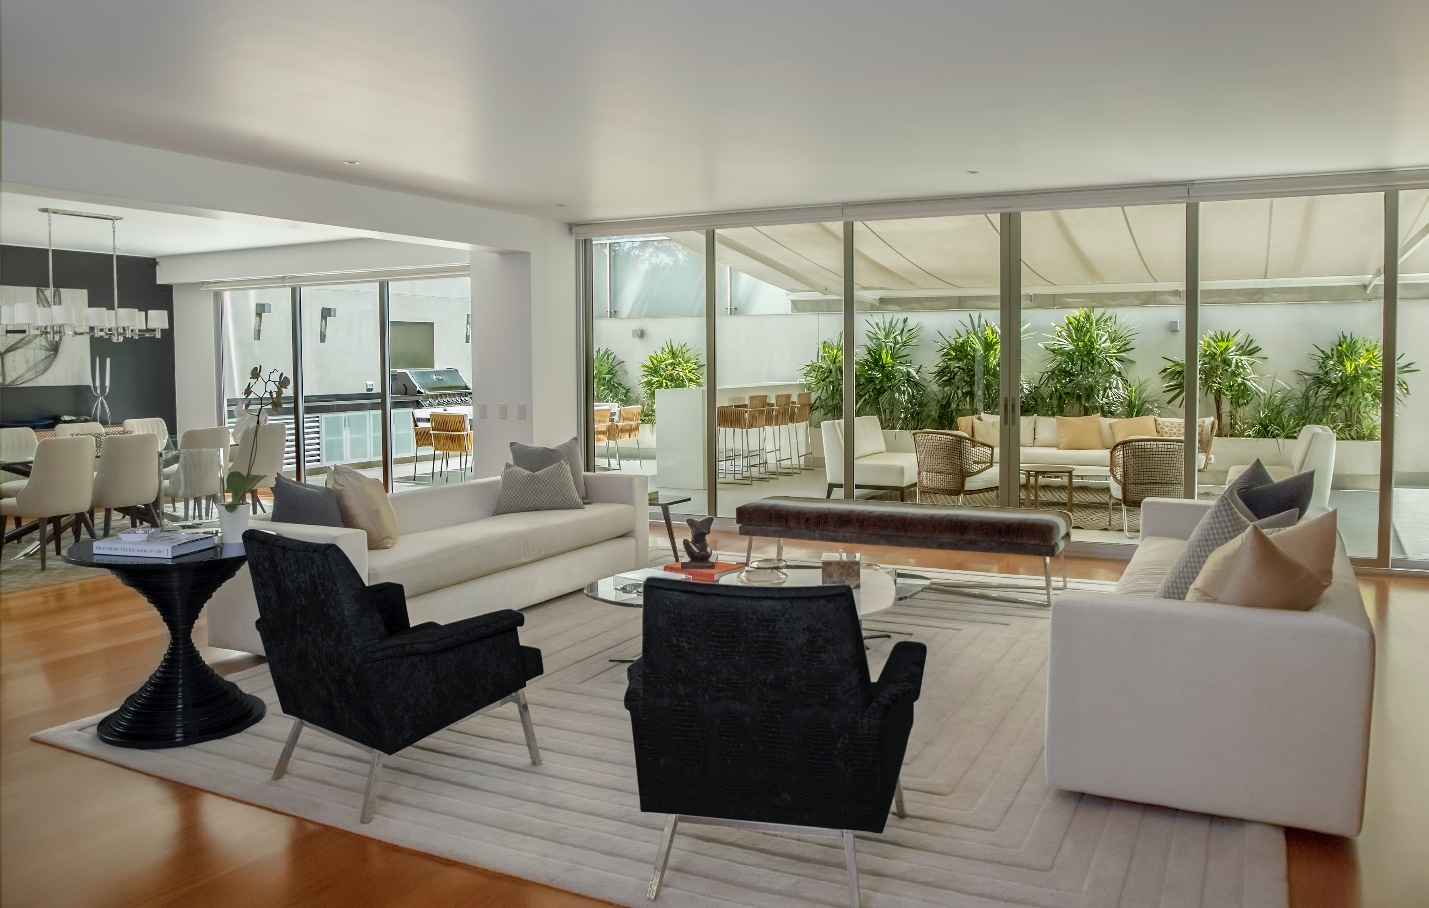 6 Best Ways to Design Your Home to Impress Your Guests